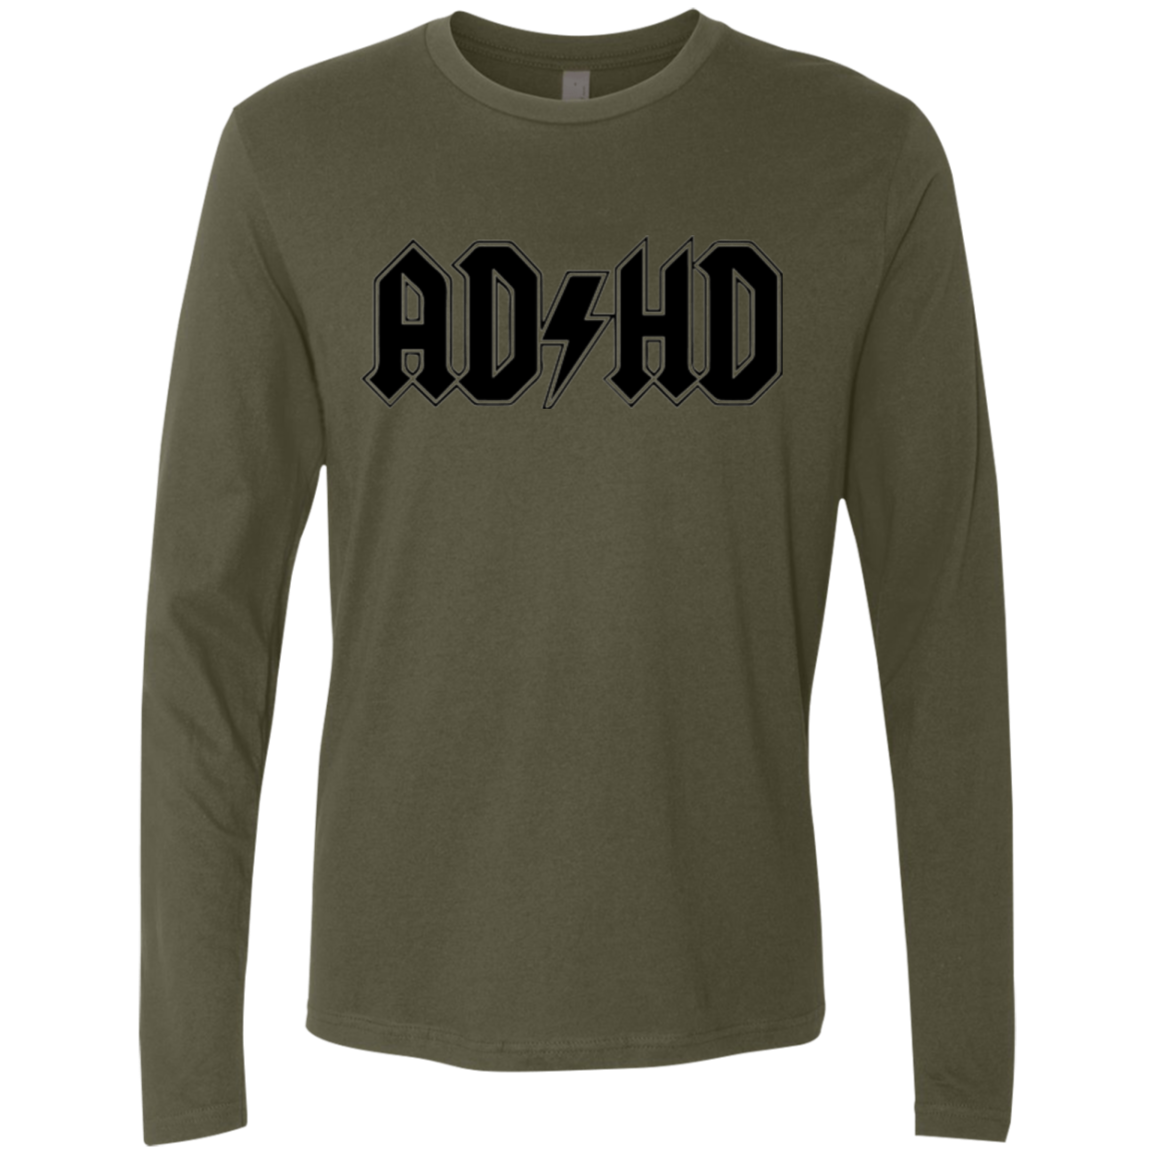 ADHD acdc Men's Long Sleeve Tee - Trendy Tees